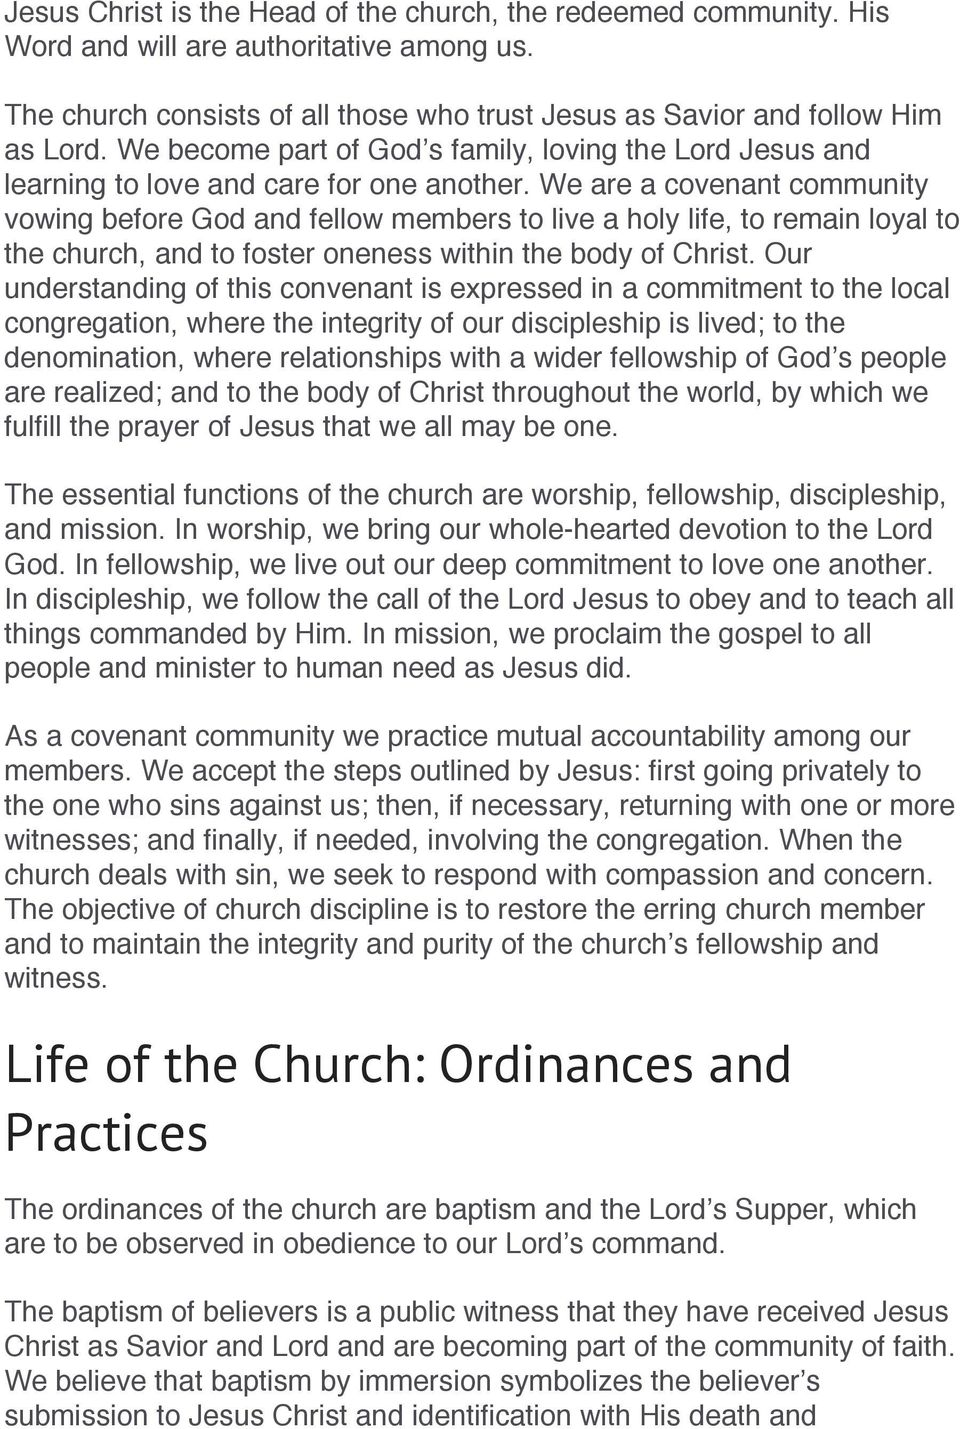 We are a covenant community vowing before God and fellow members to live a holy life, to remain loyal to the church, and to foster oneness within the body of Christ.